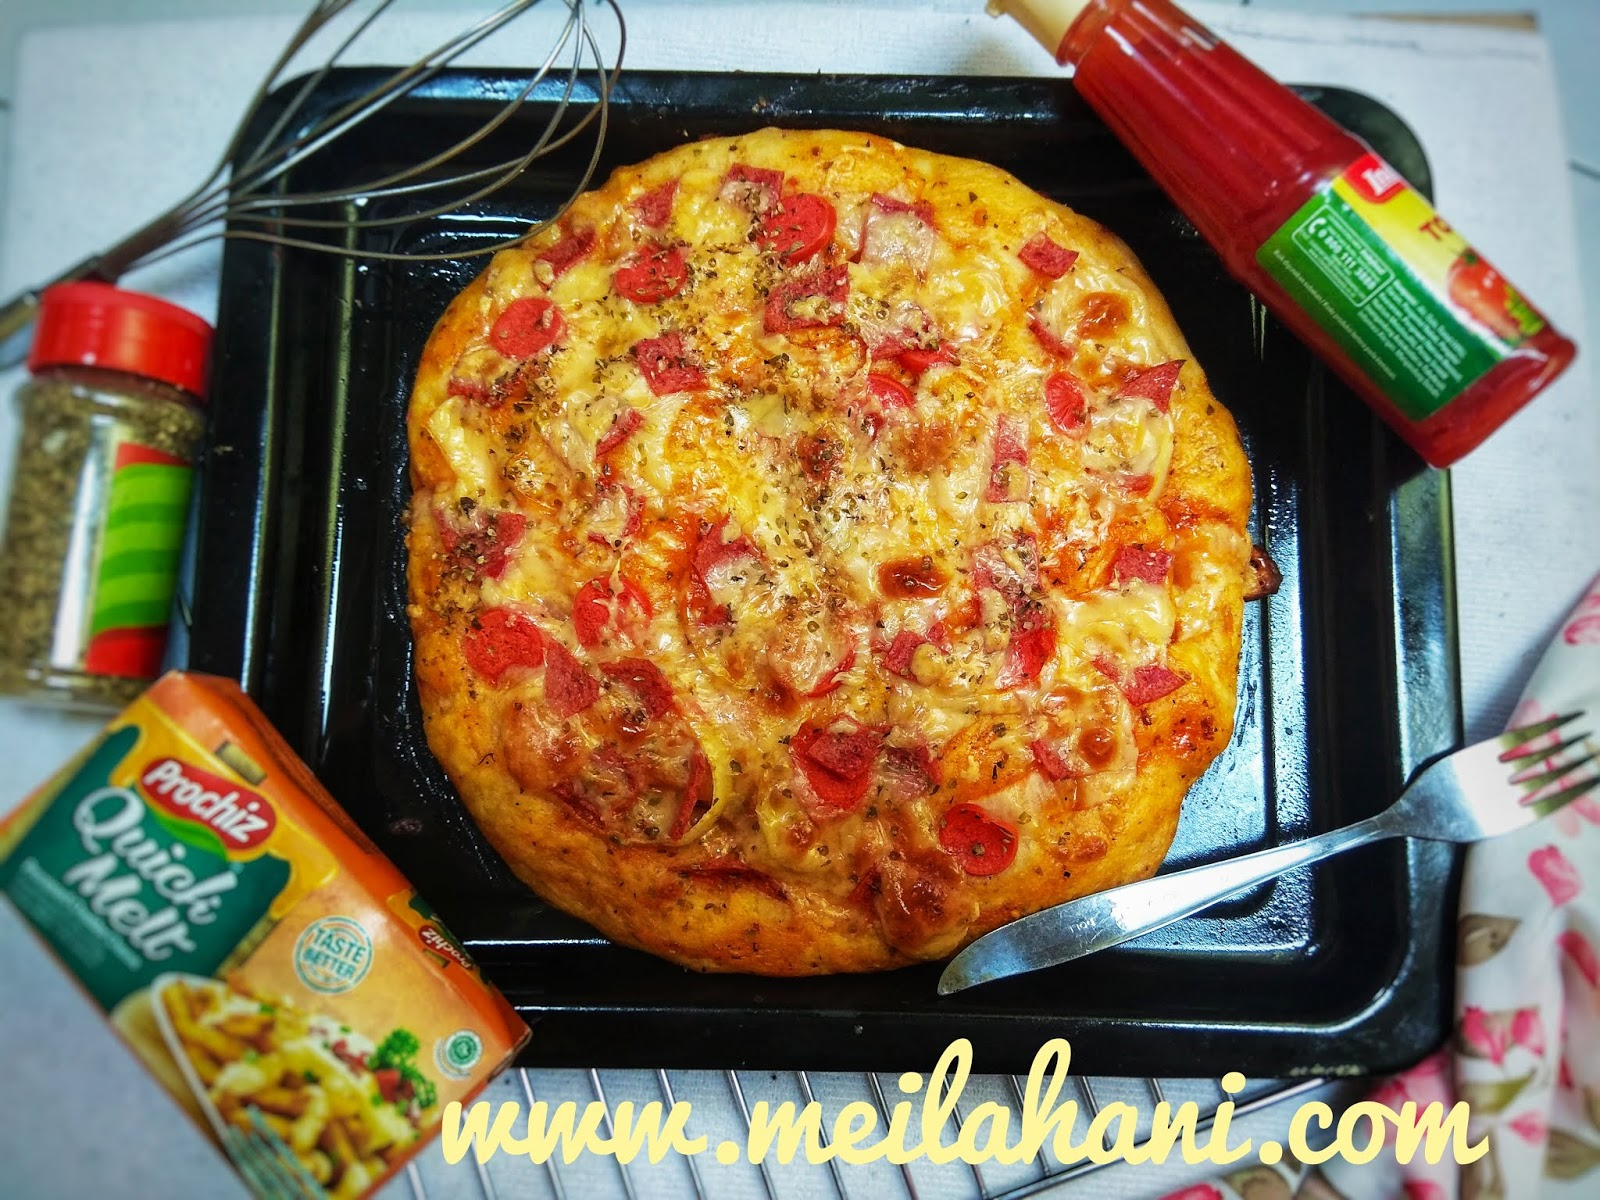 Resep Pizza tanpa ulen, No-Knead Pizza